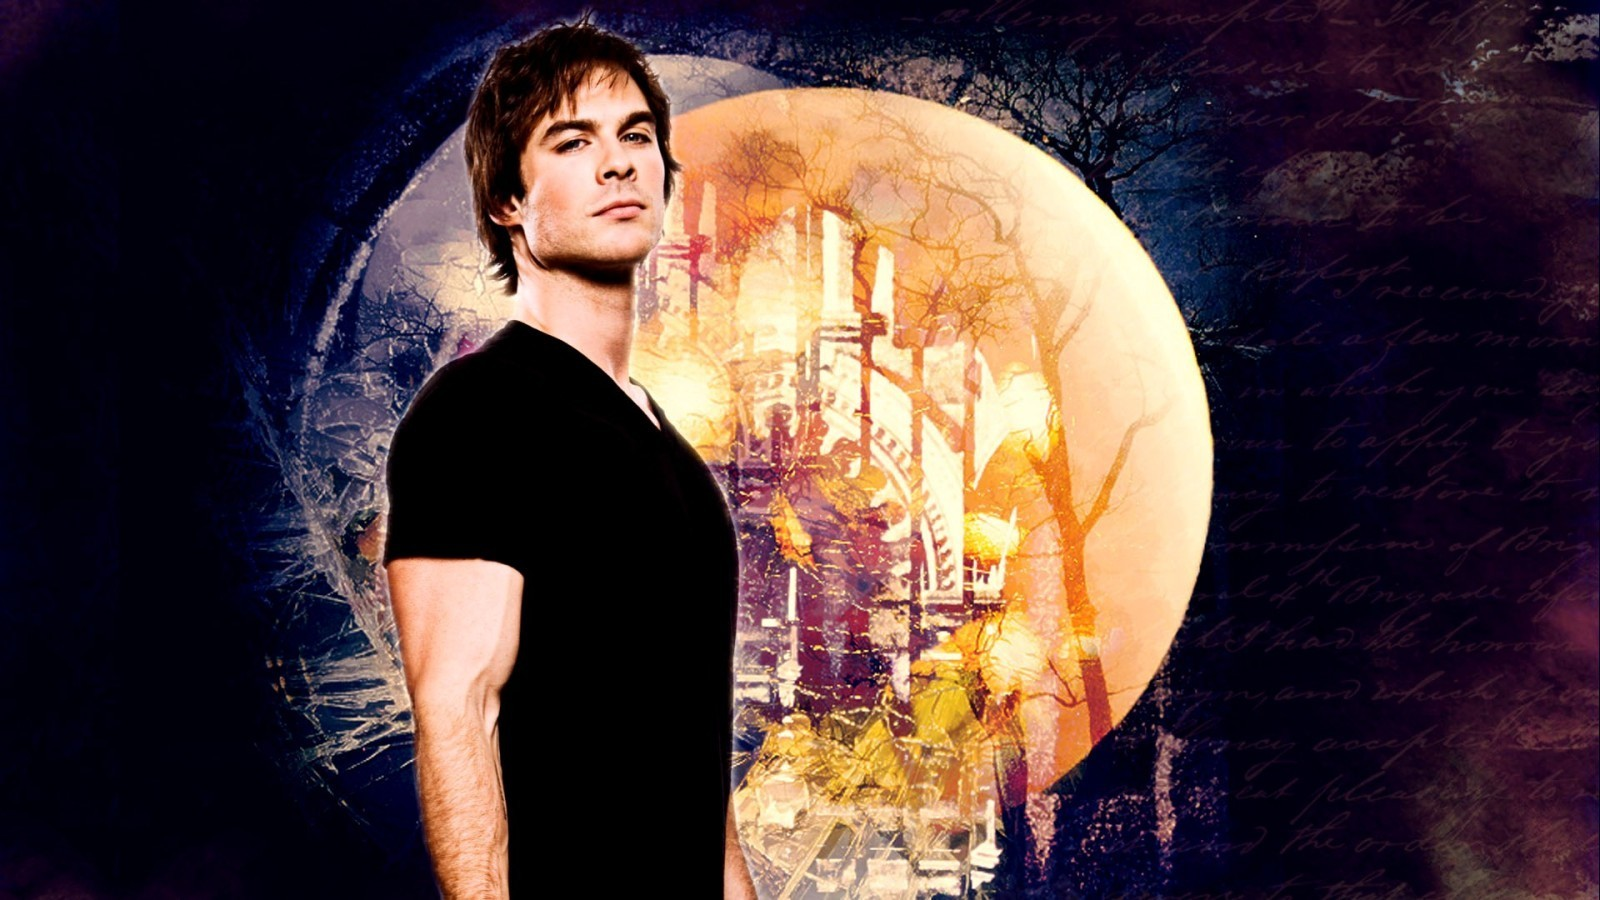 ian - ian-somerhalder wallpaper